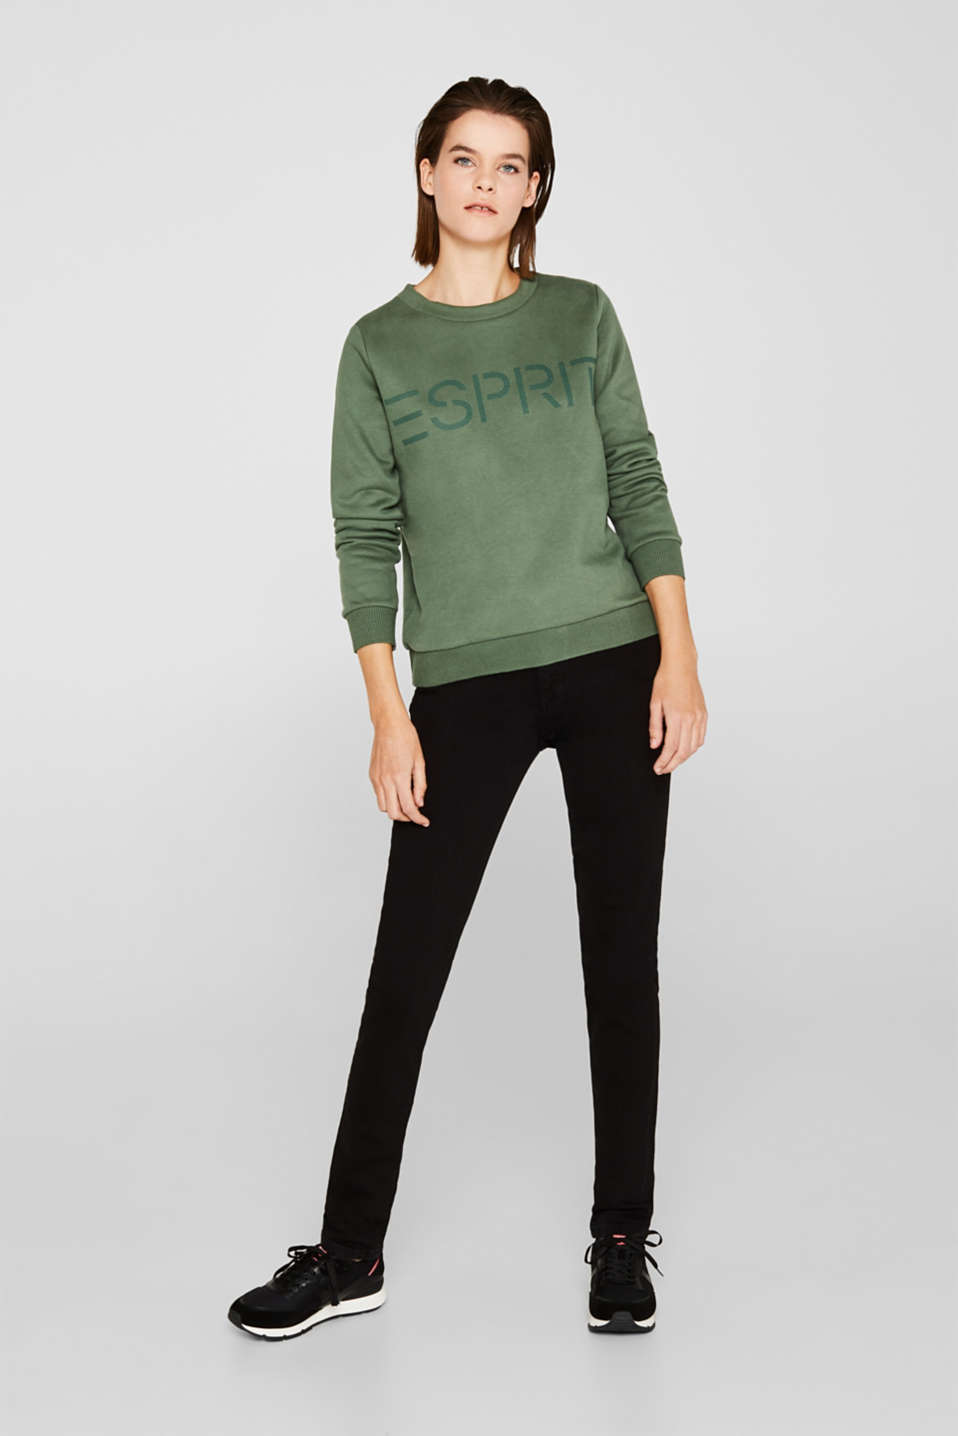 Logo sweatshirt with a feminine neckline, KHAKI GREEN, detail image number 1